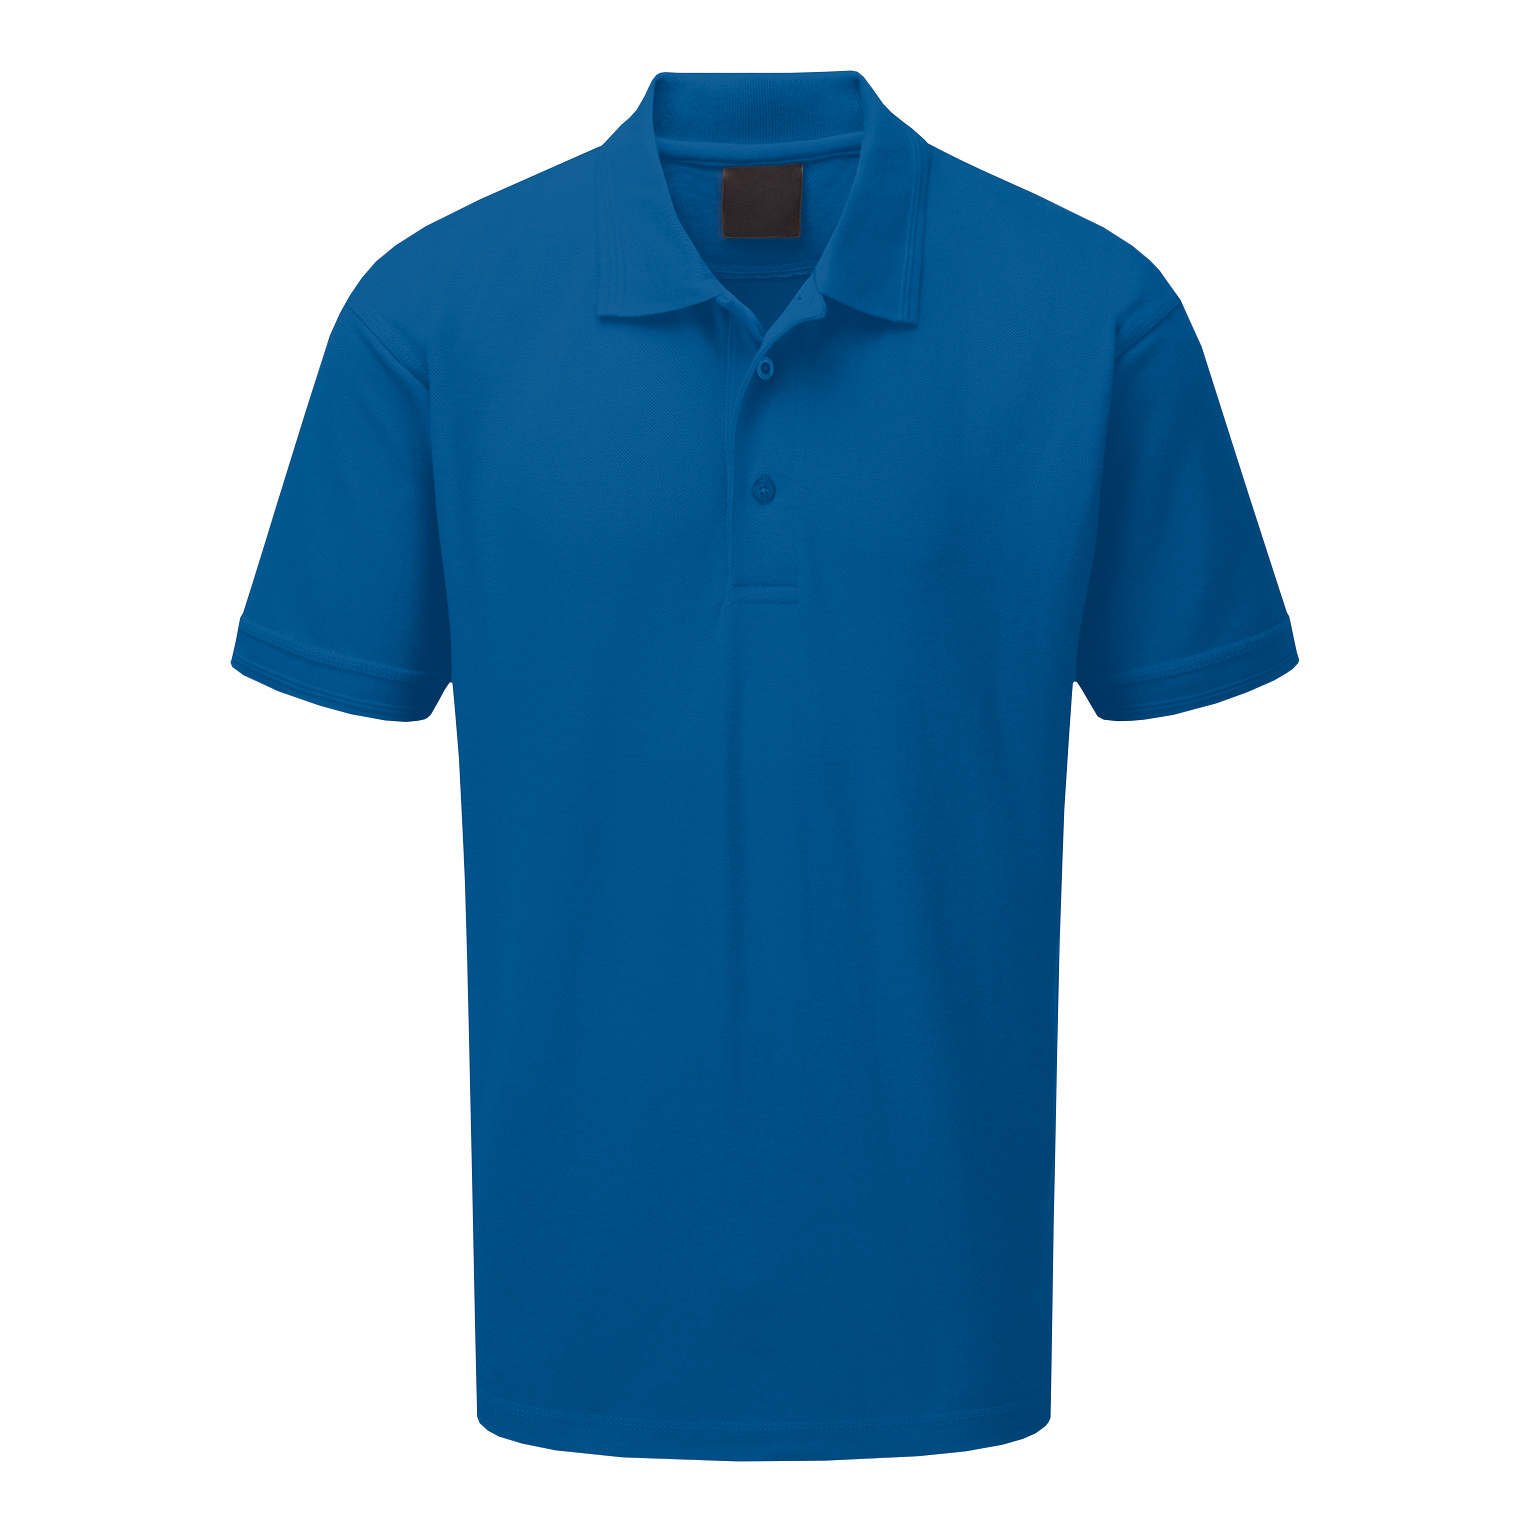 Premium Polo Shirt Triple Button 220gsm Polycotton XL Royal Blue Ref CLPKSRXL *Approx 3 Day Leadtime*